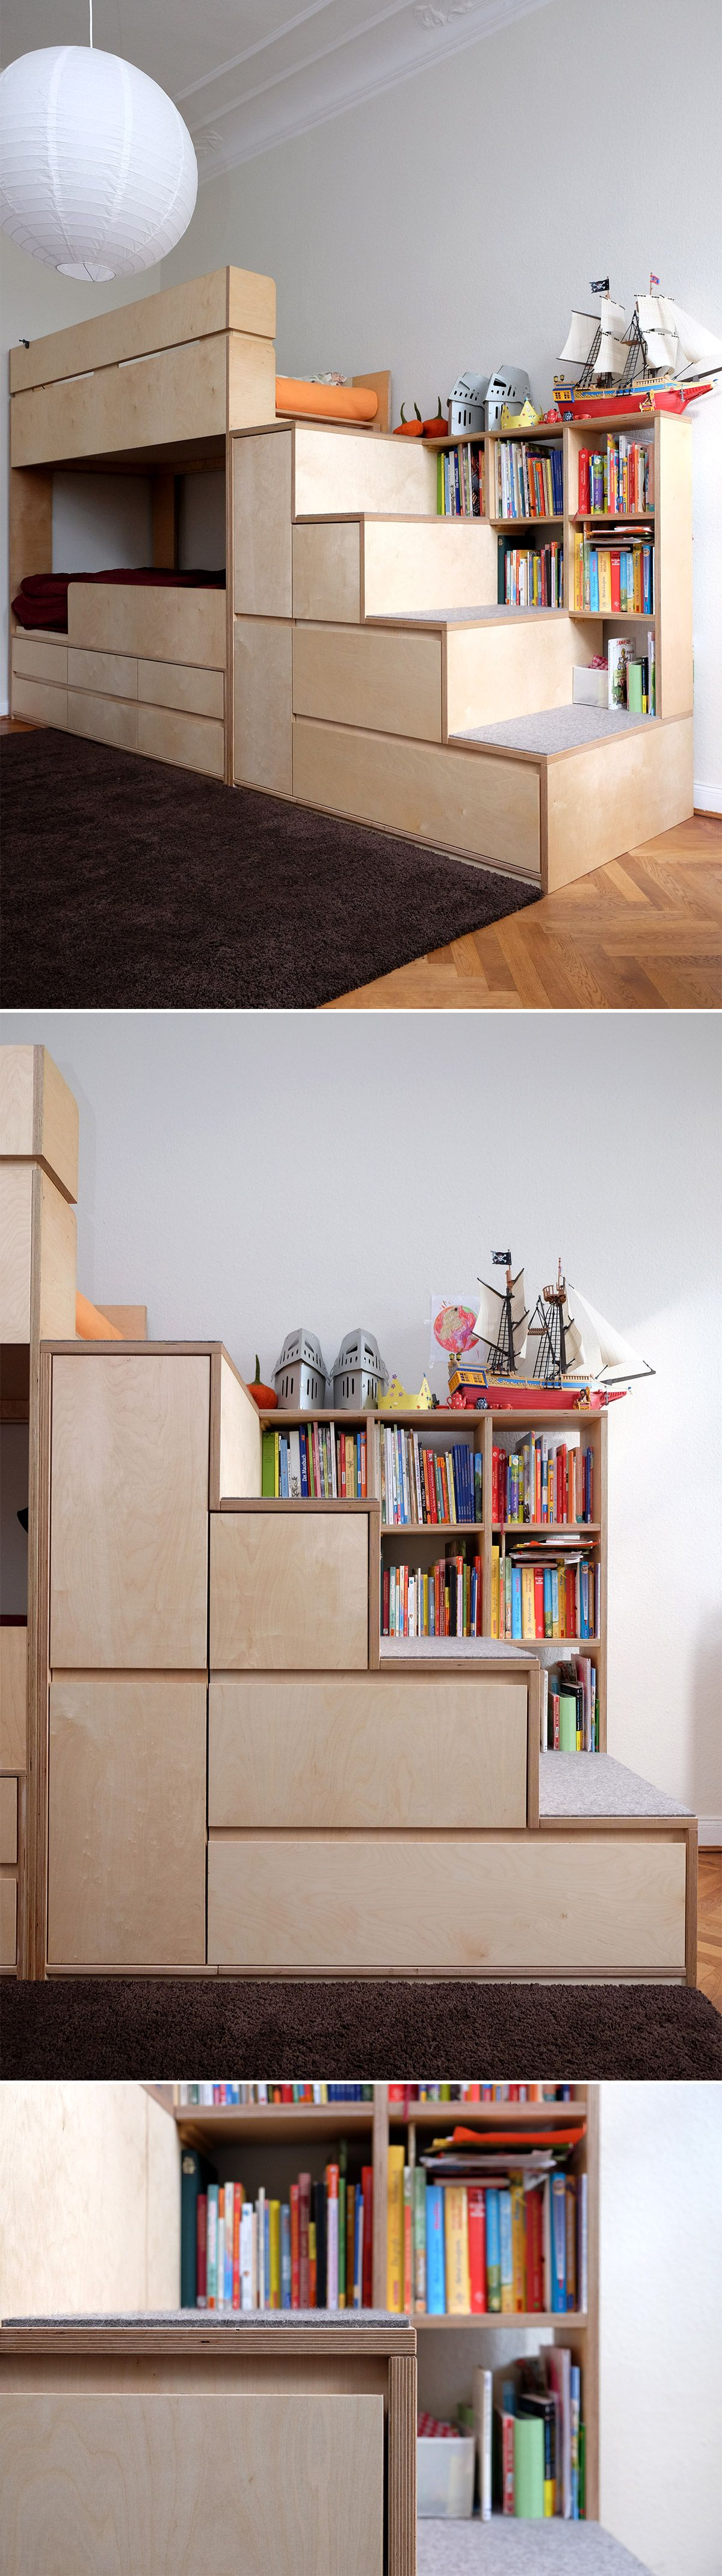 kinderzimmer etagenbett hochbett mit treppe und stauraum sperrholz multiplex birke filz. Black Bedroom Furniture Sets. Home Design Ideas